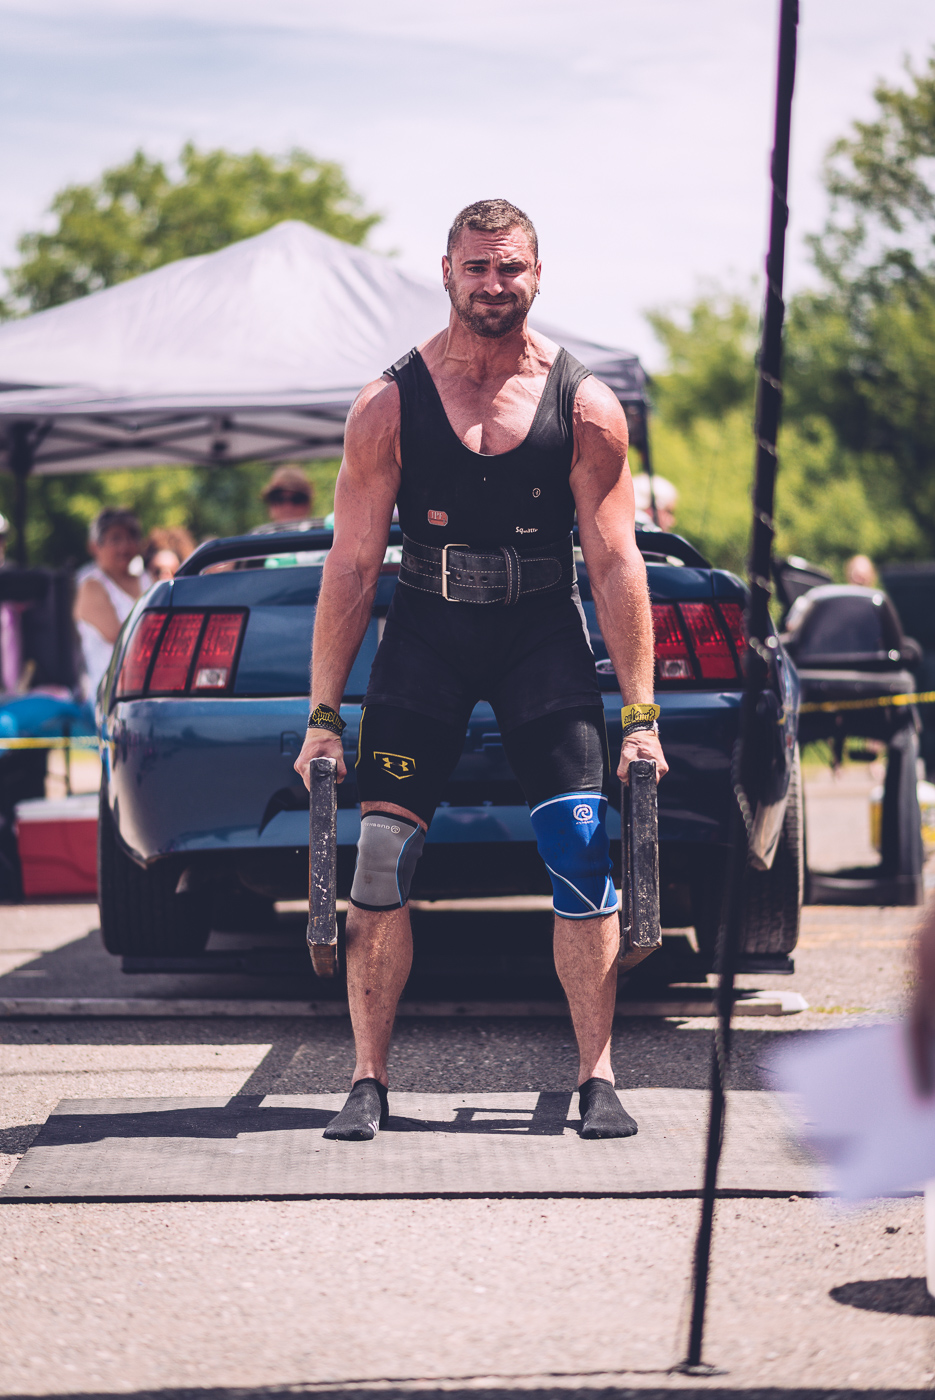 strongman_2016_blog14.jpg